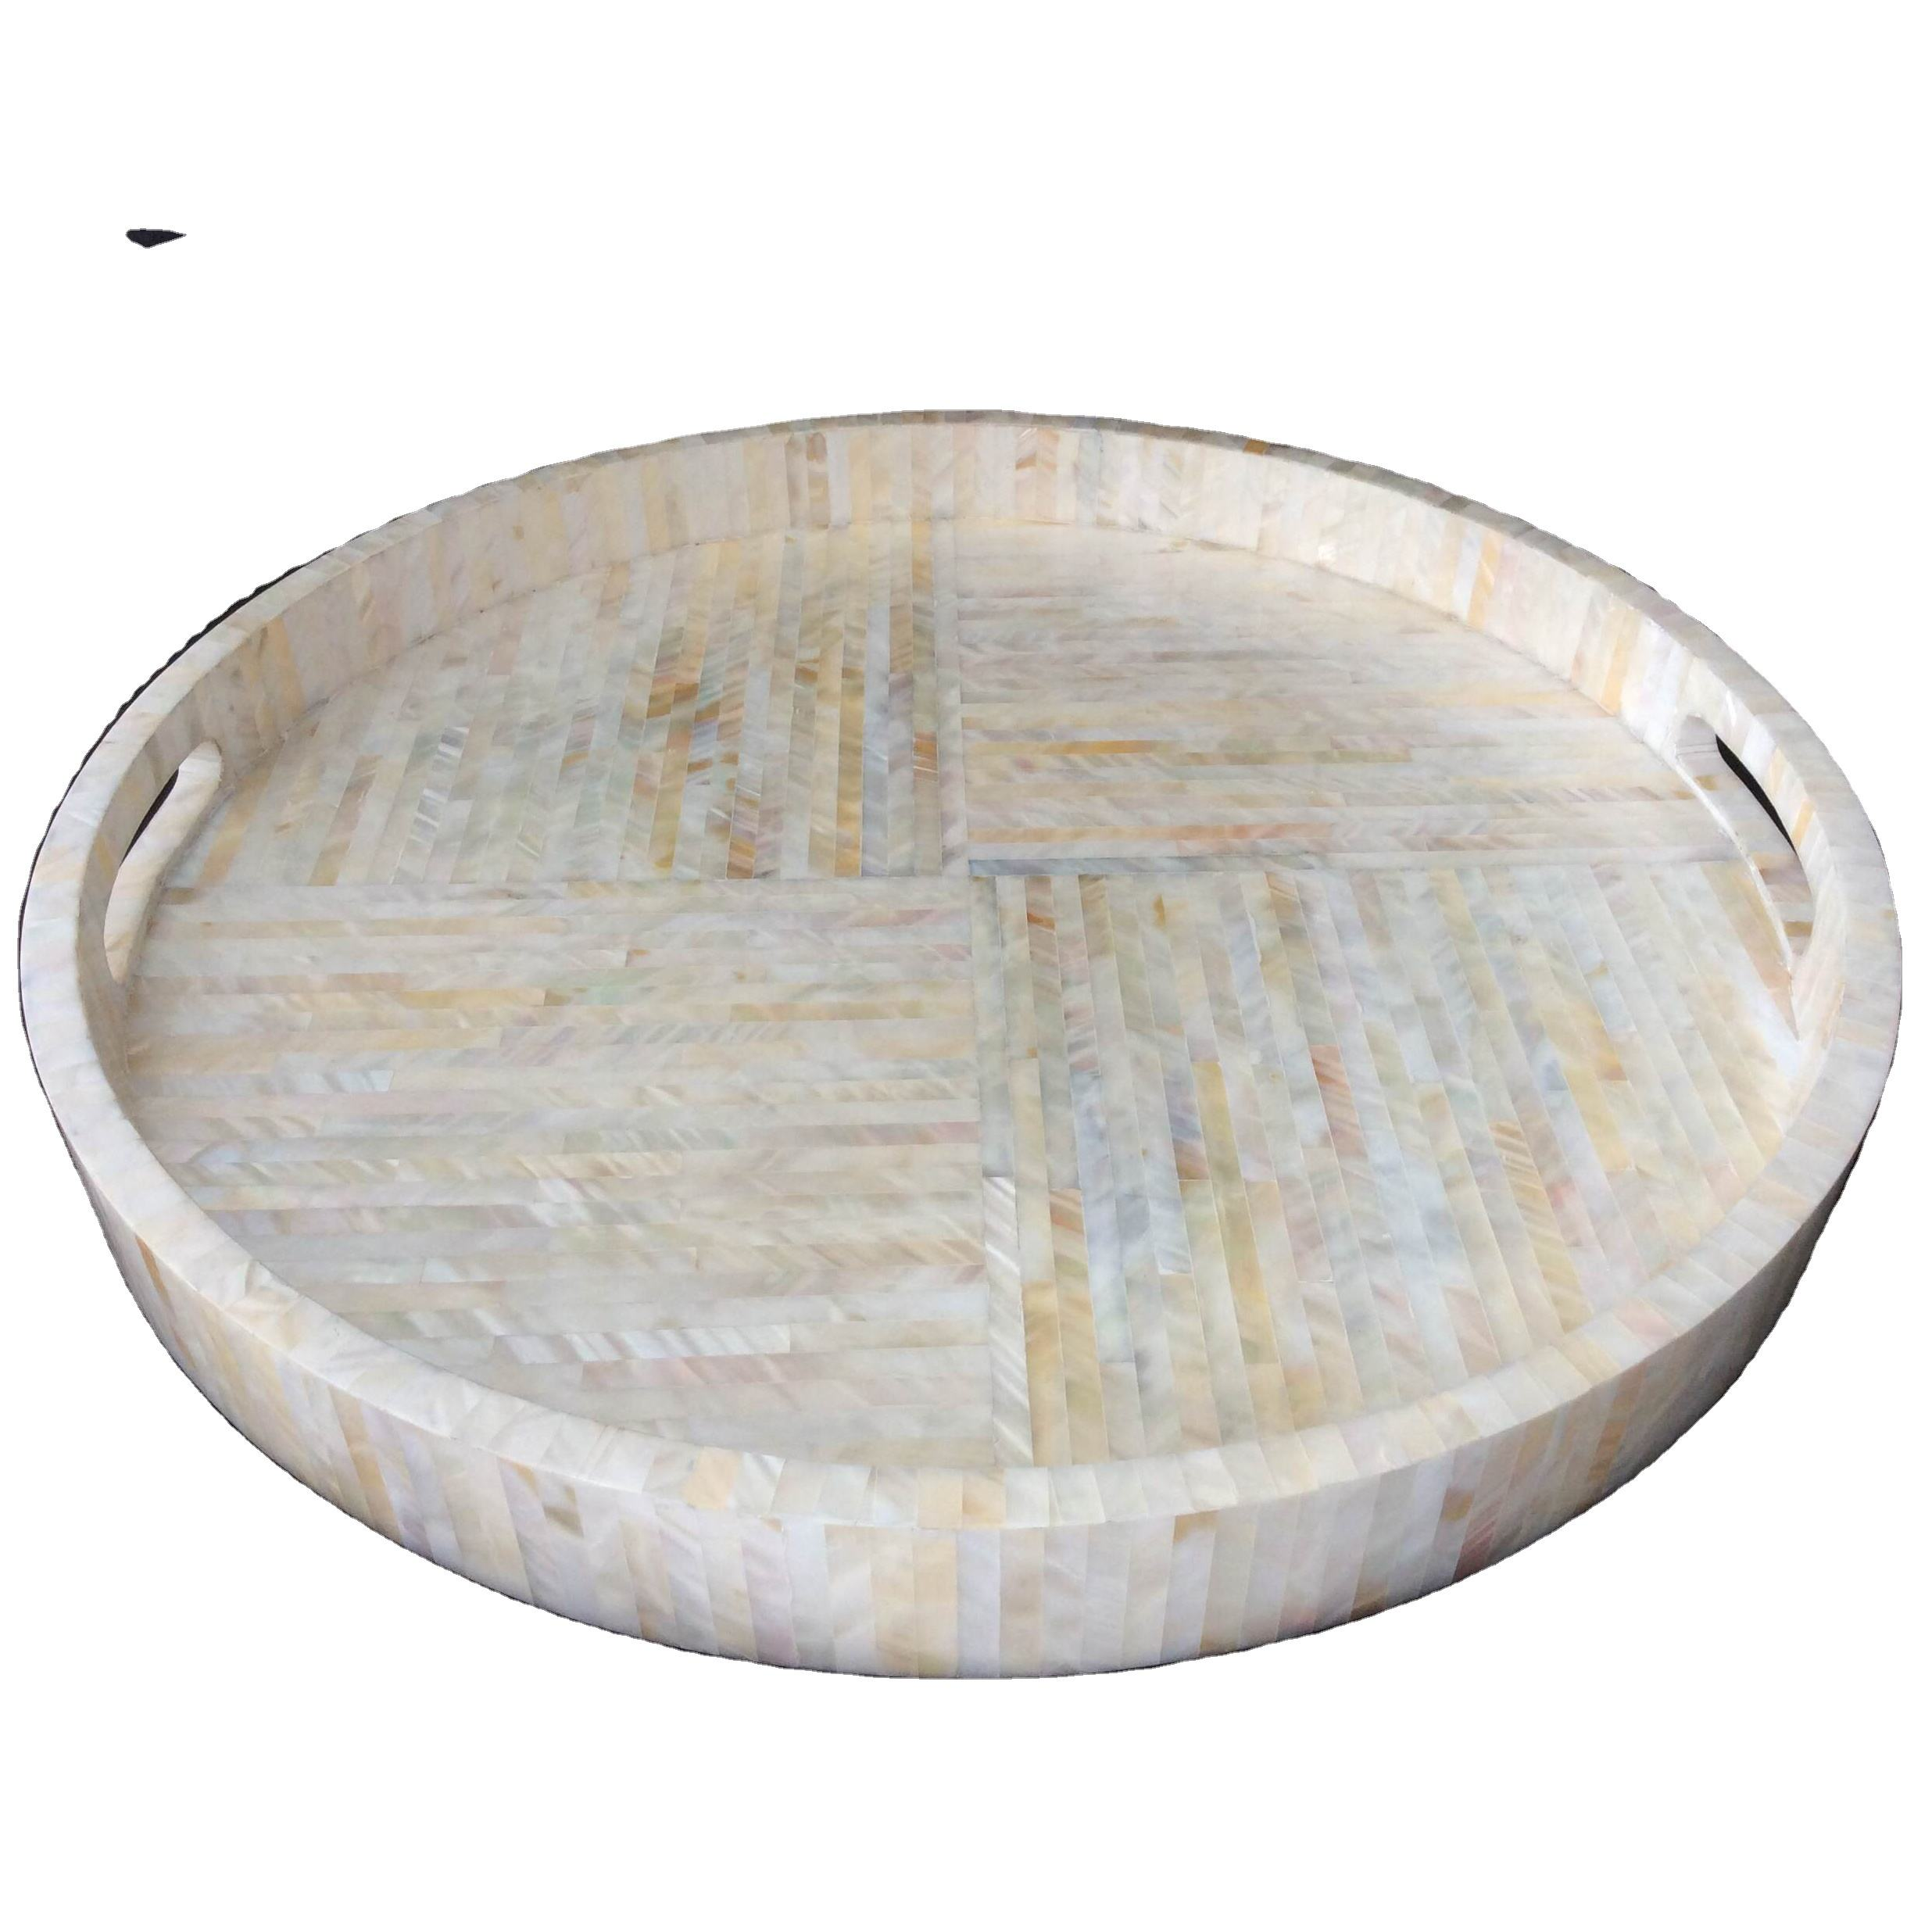 High quality round natural Mother of pearl tray with handle from Vietnam